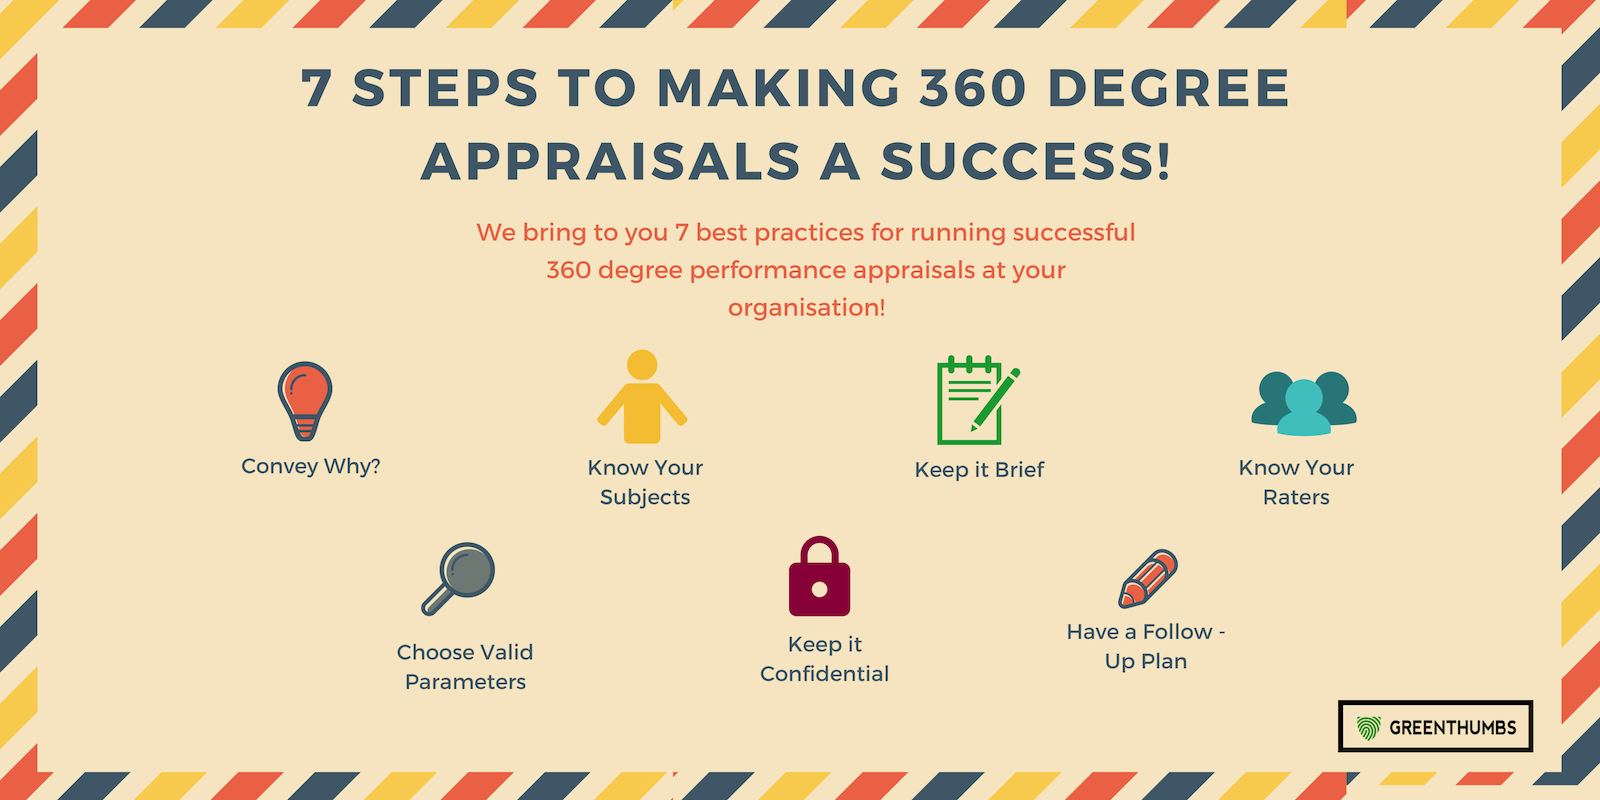 7 steps to making 360 Degree Appraisals a success!